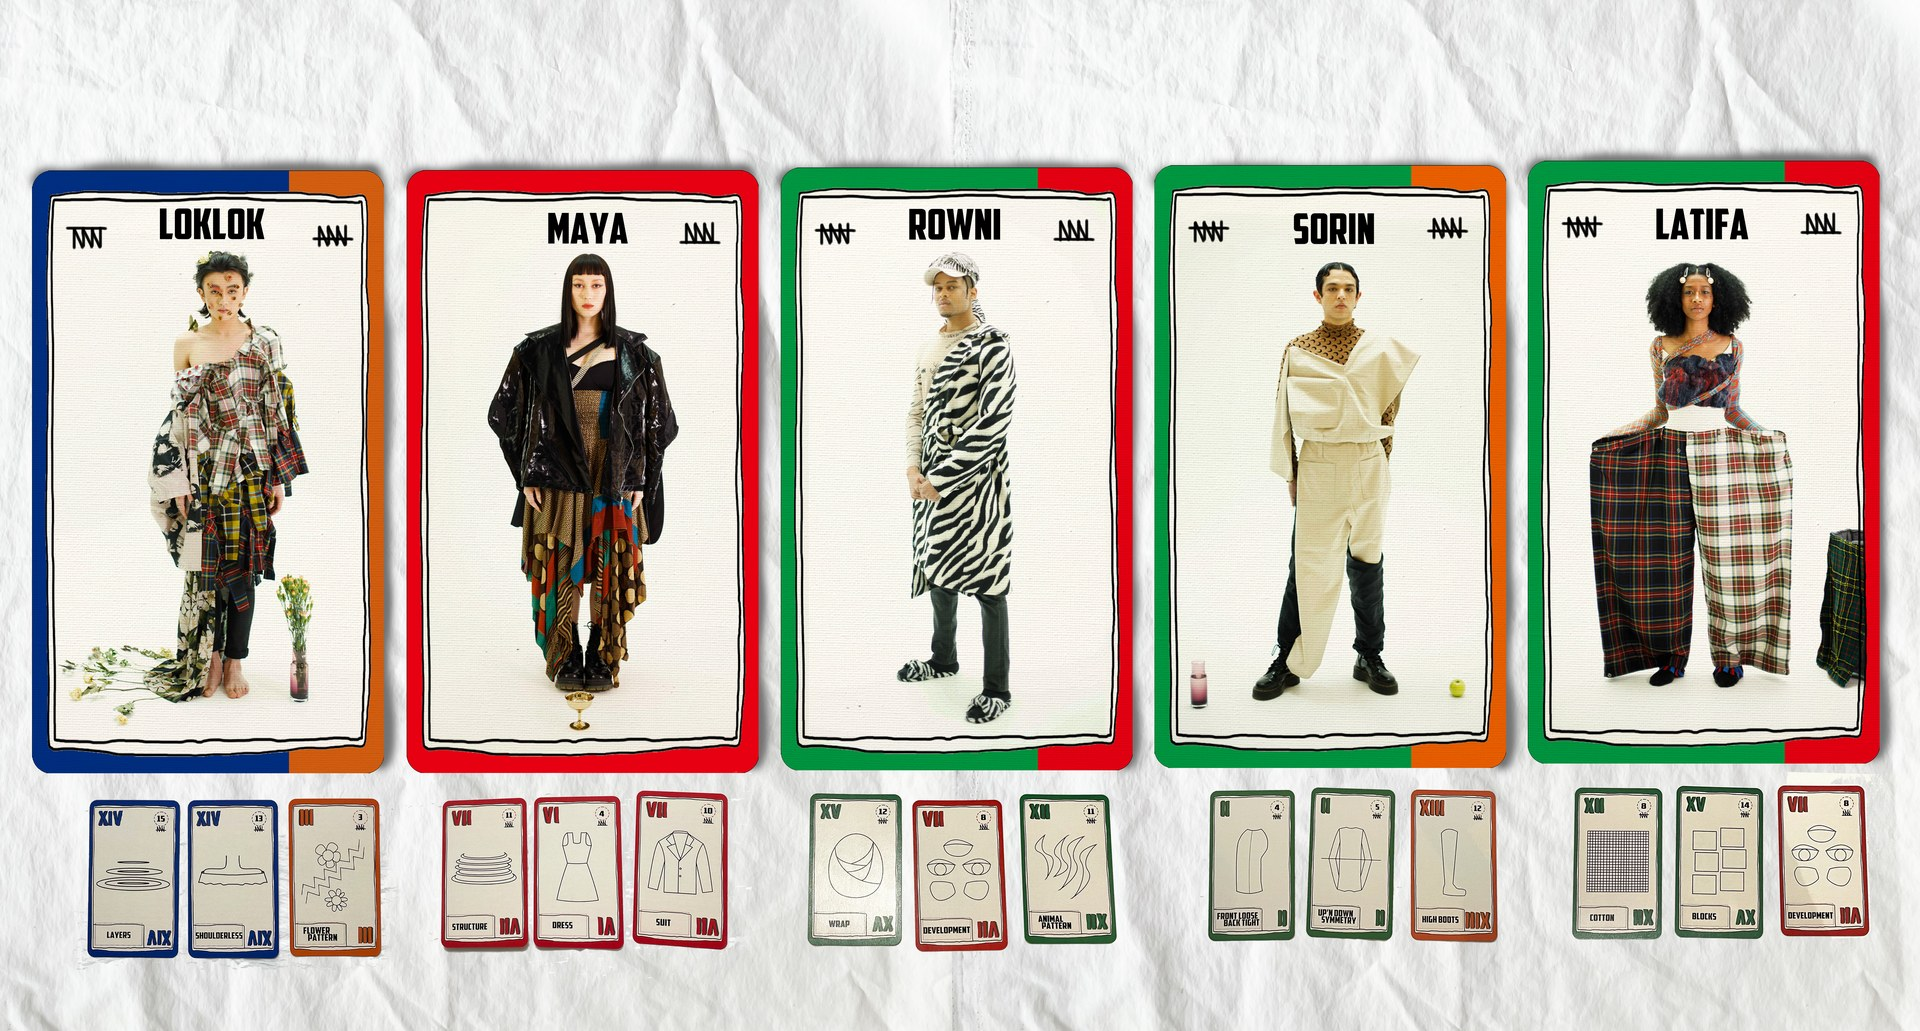 THE LOOK CARDS